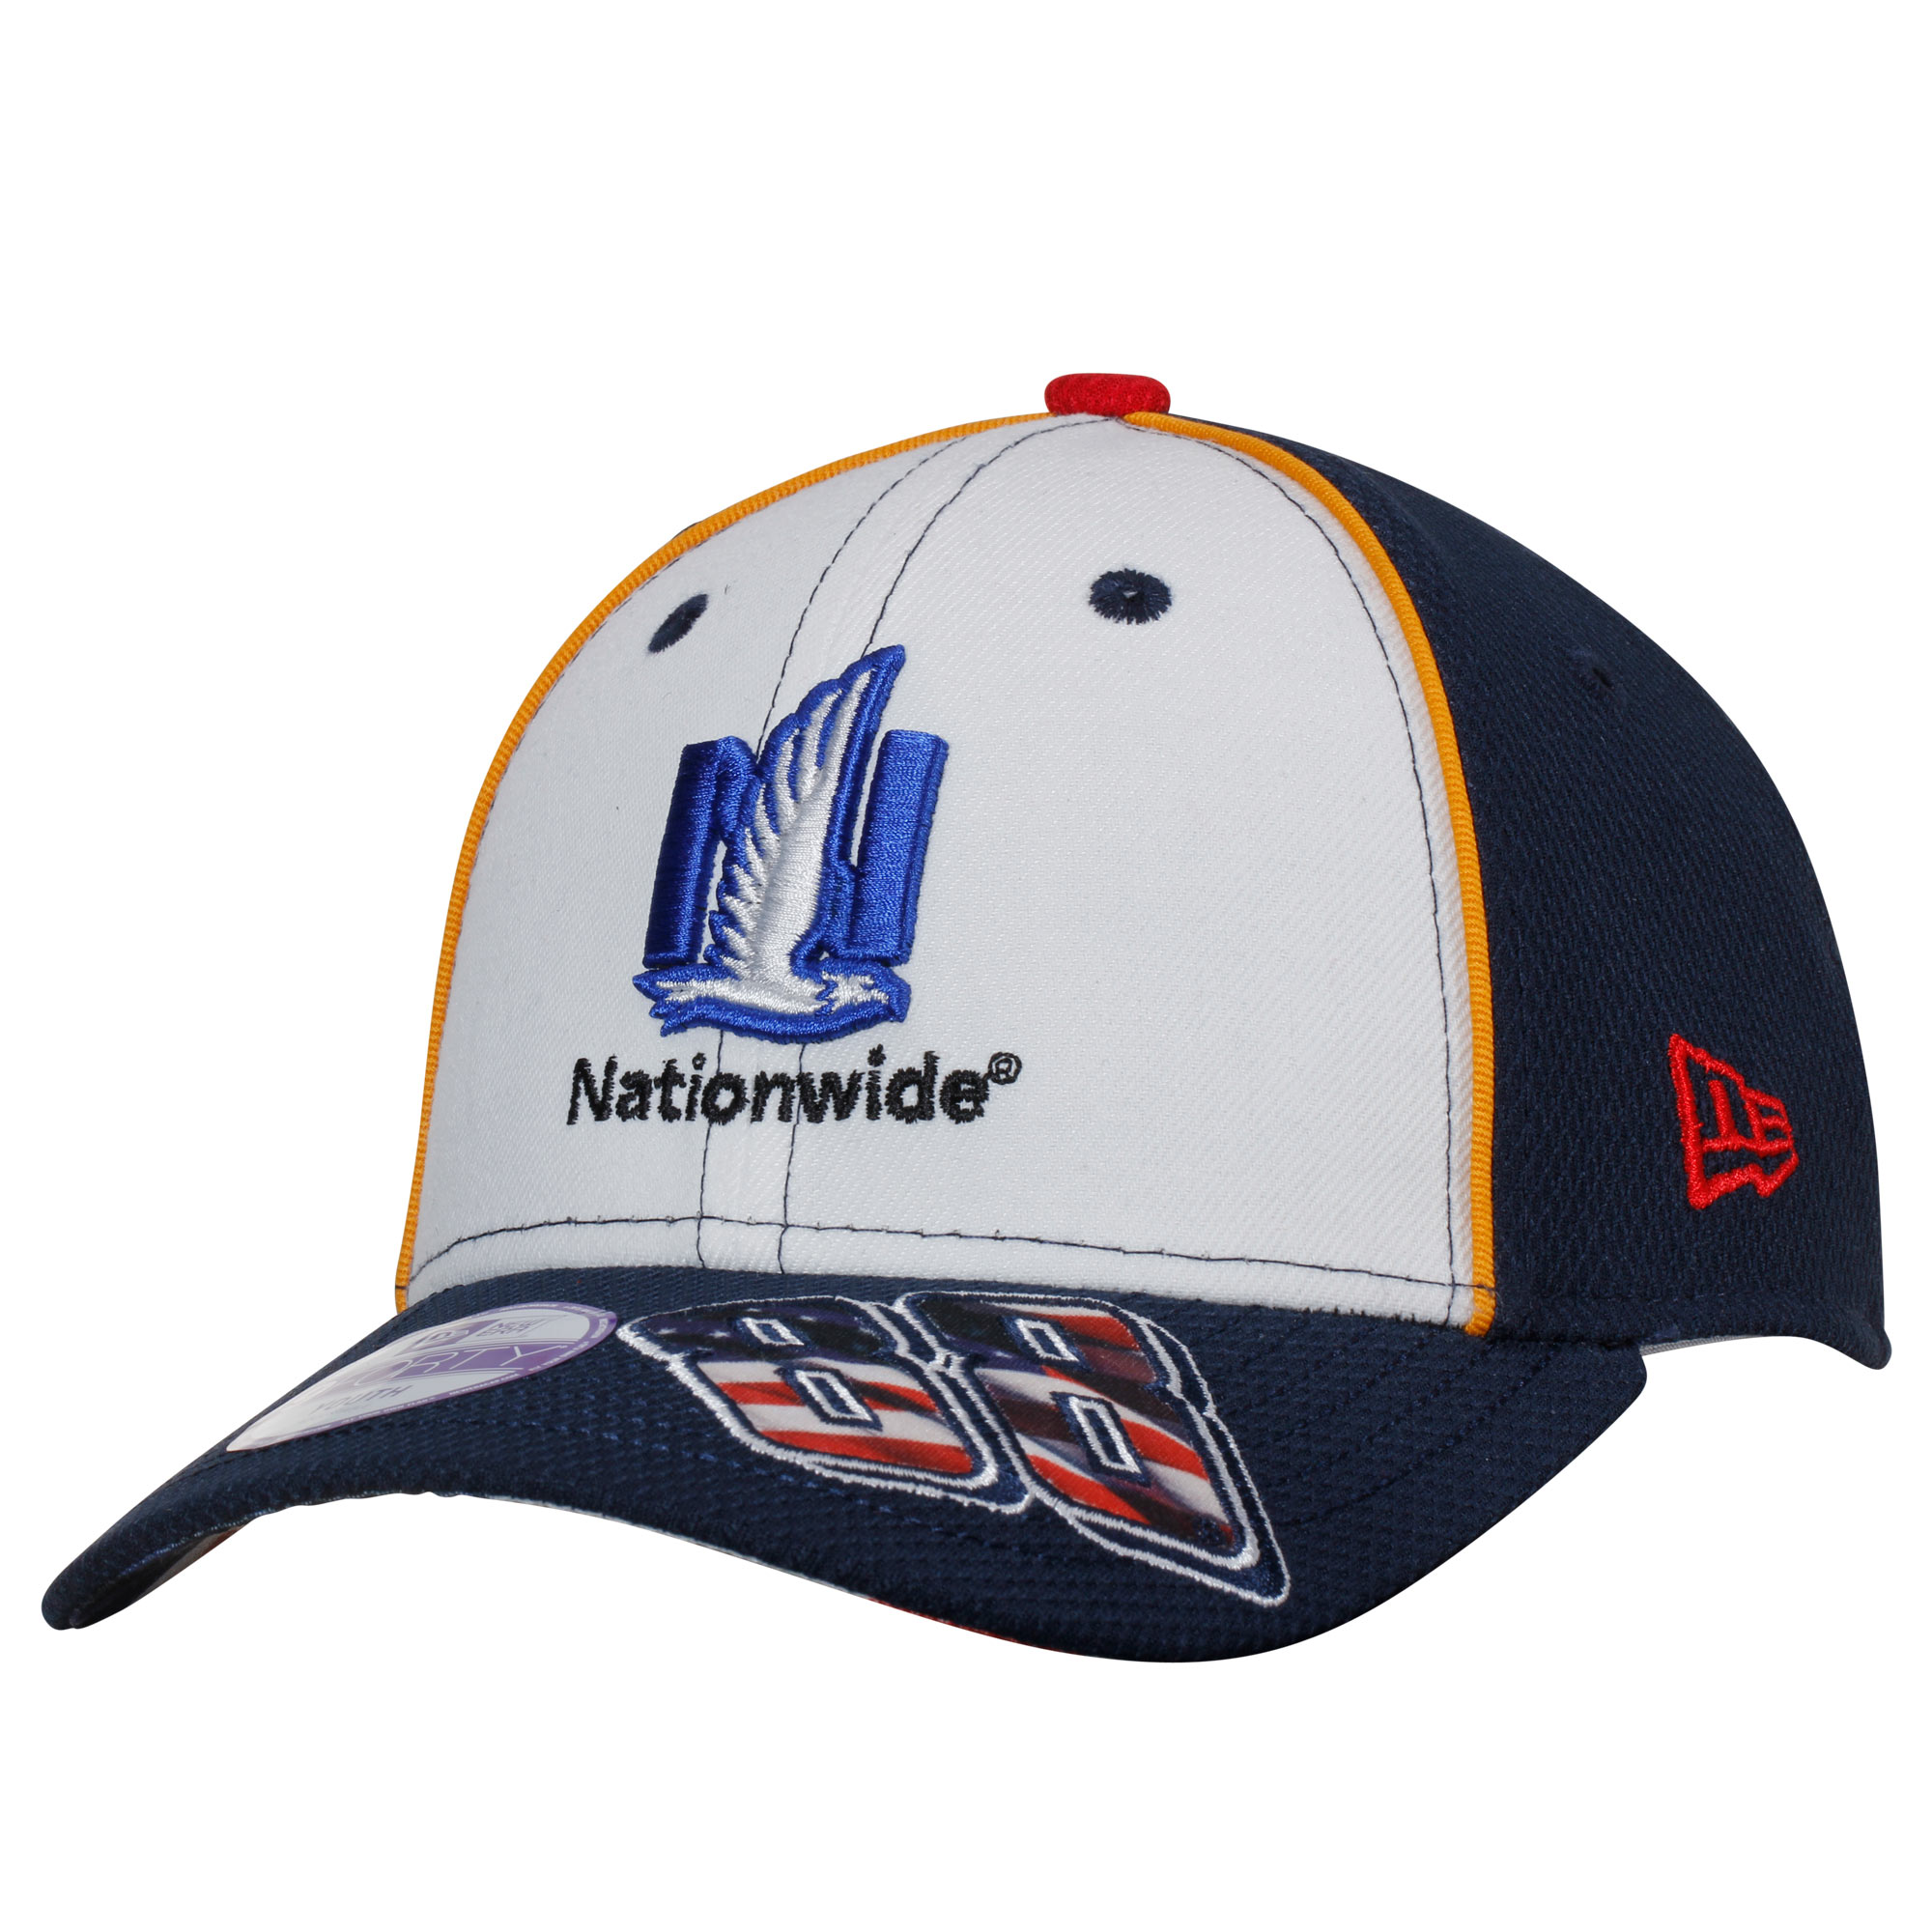 Dale Earnhardt Jr. New Era Youth Nationwide American Salute 9FORTY Adjustable Hat - White/Navy - OSFA